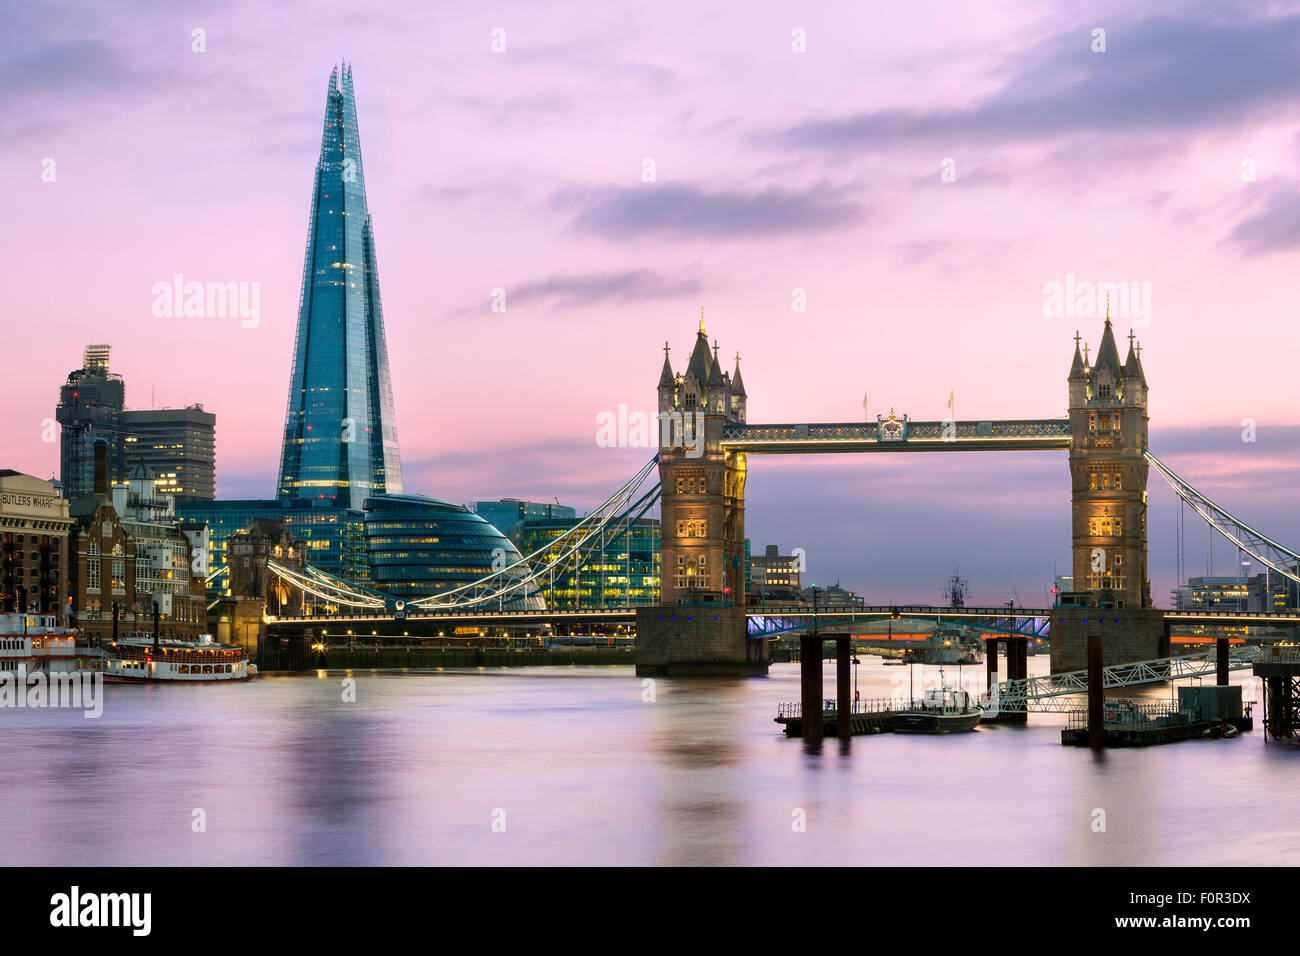 London, Tower bridge and Shard London Bridge at Dusk - Stock Image